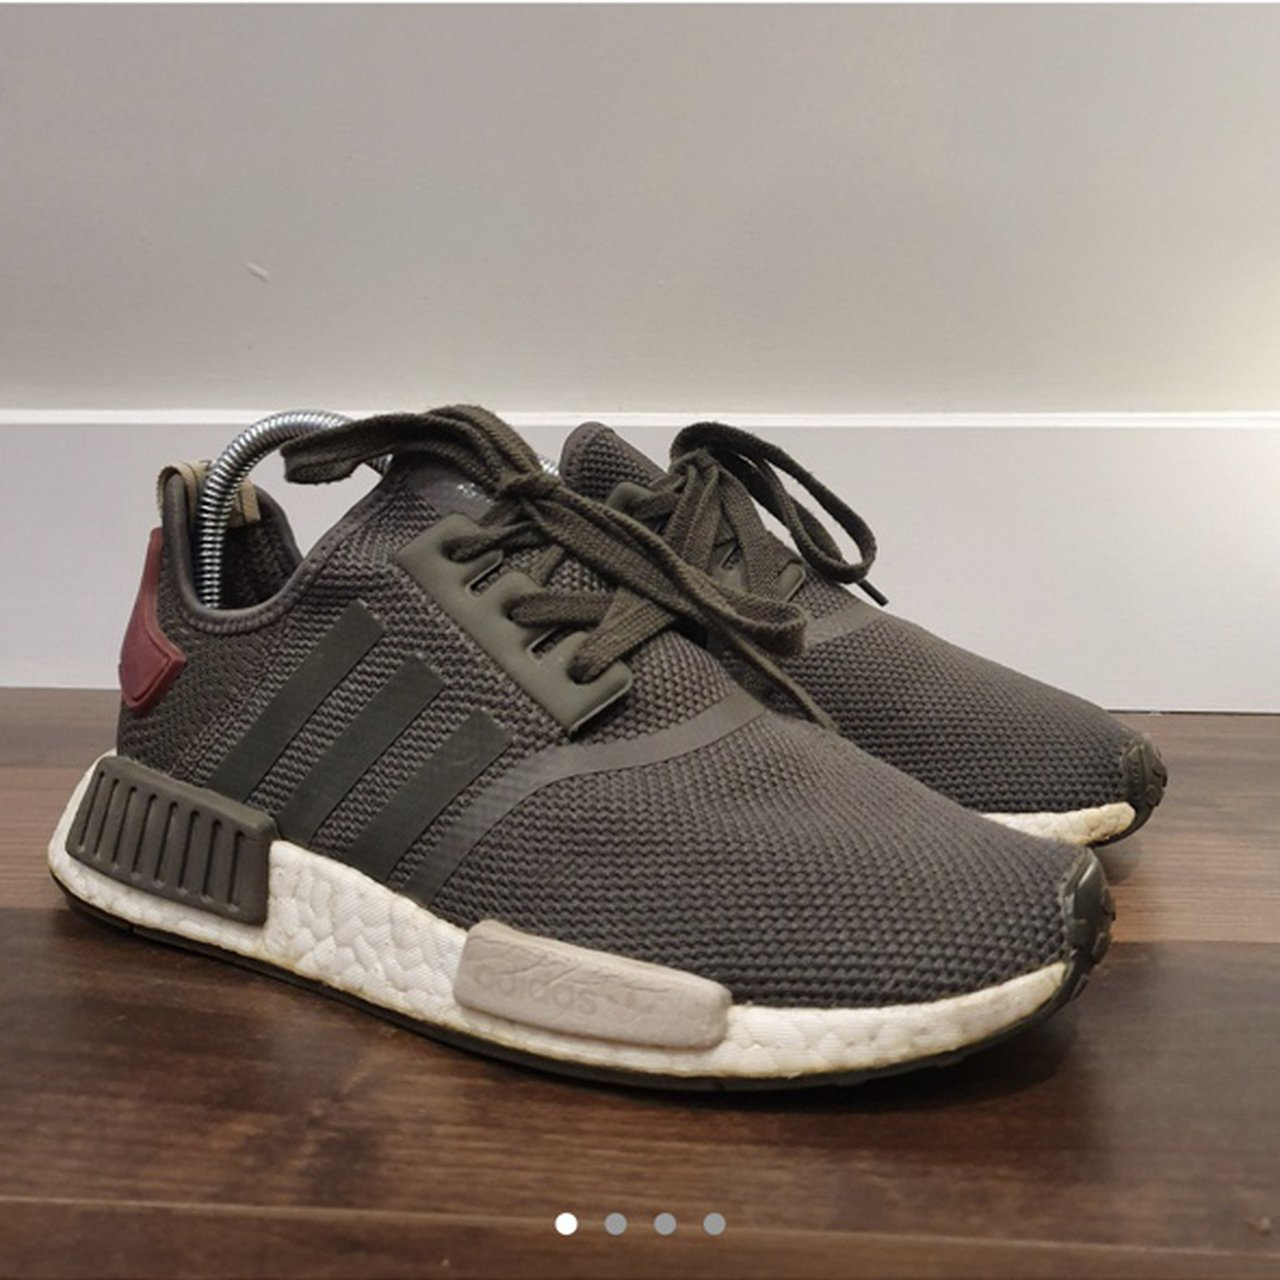 Adidas NMD • size 7 • excellent